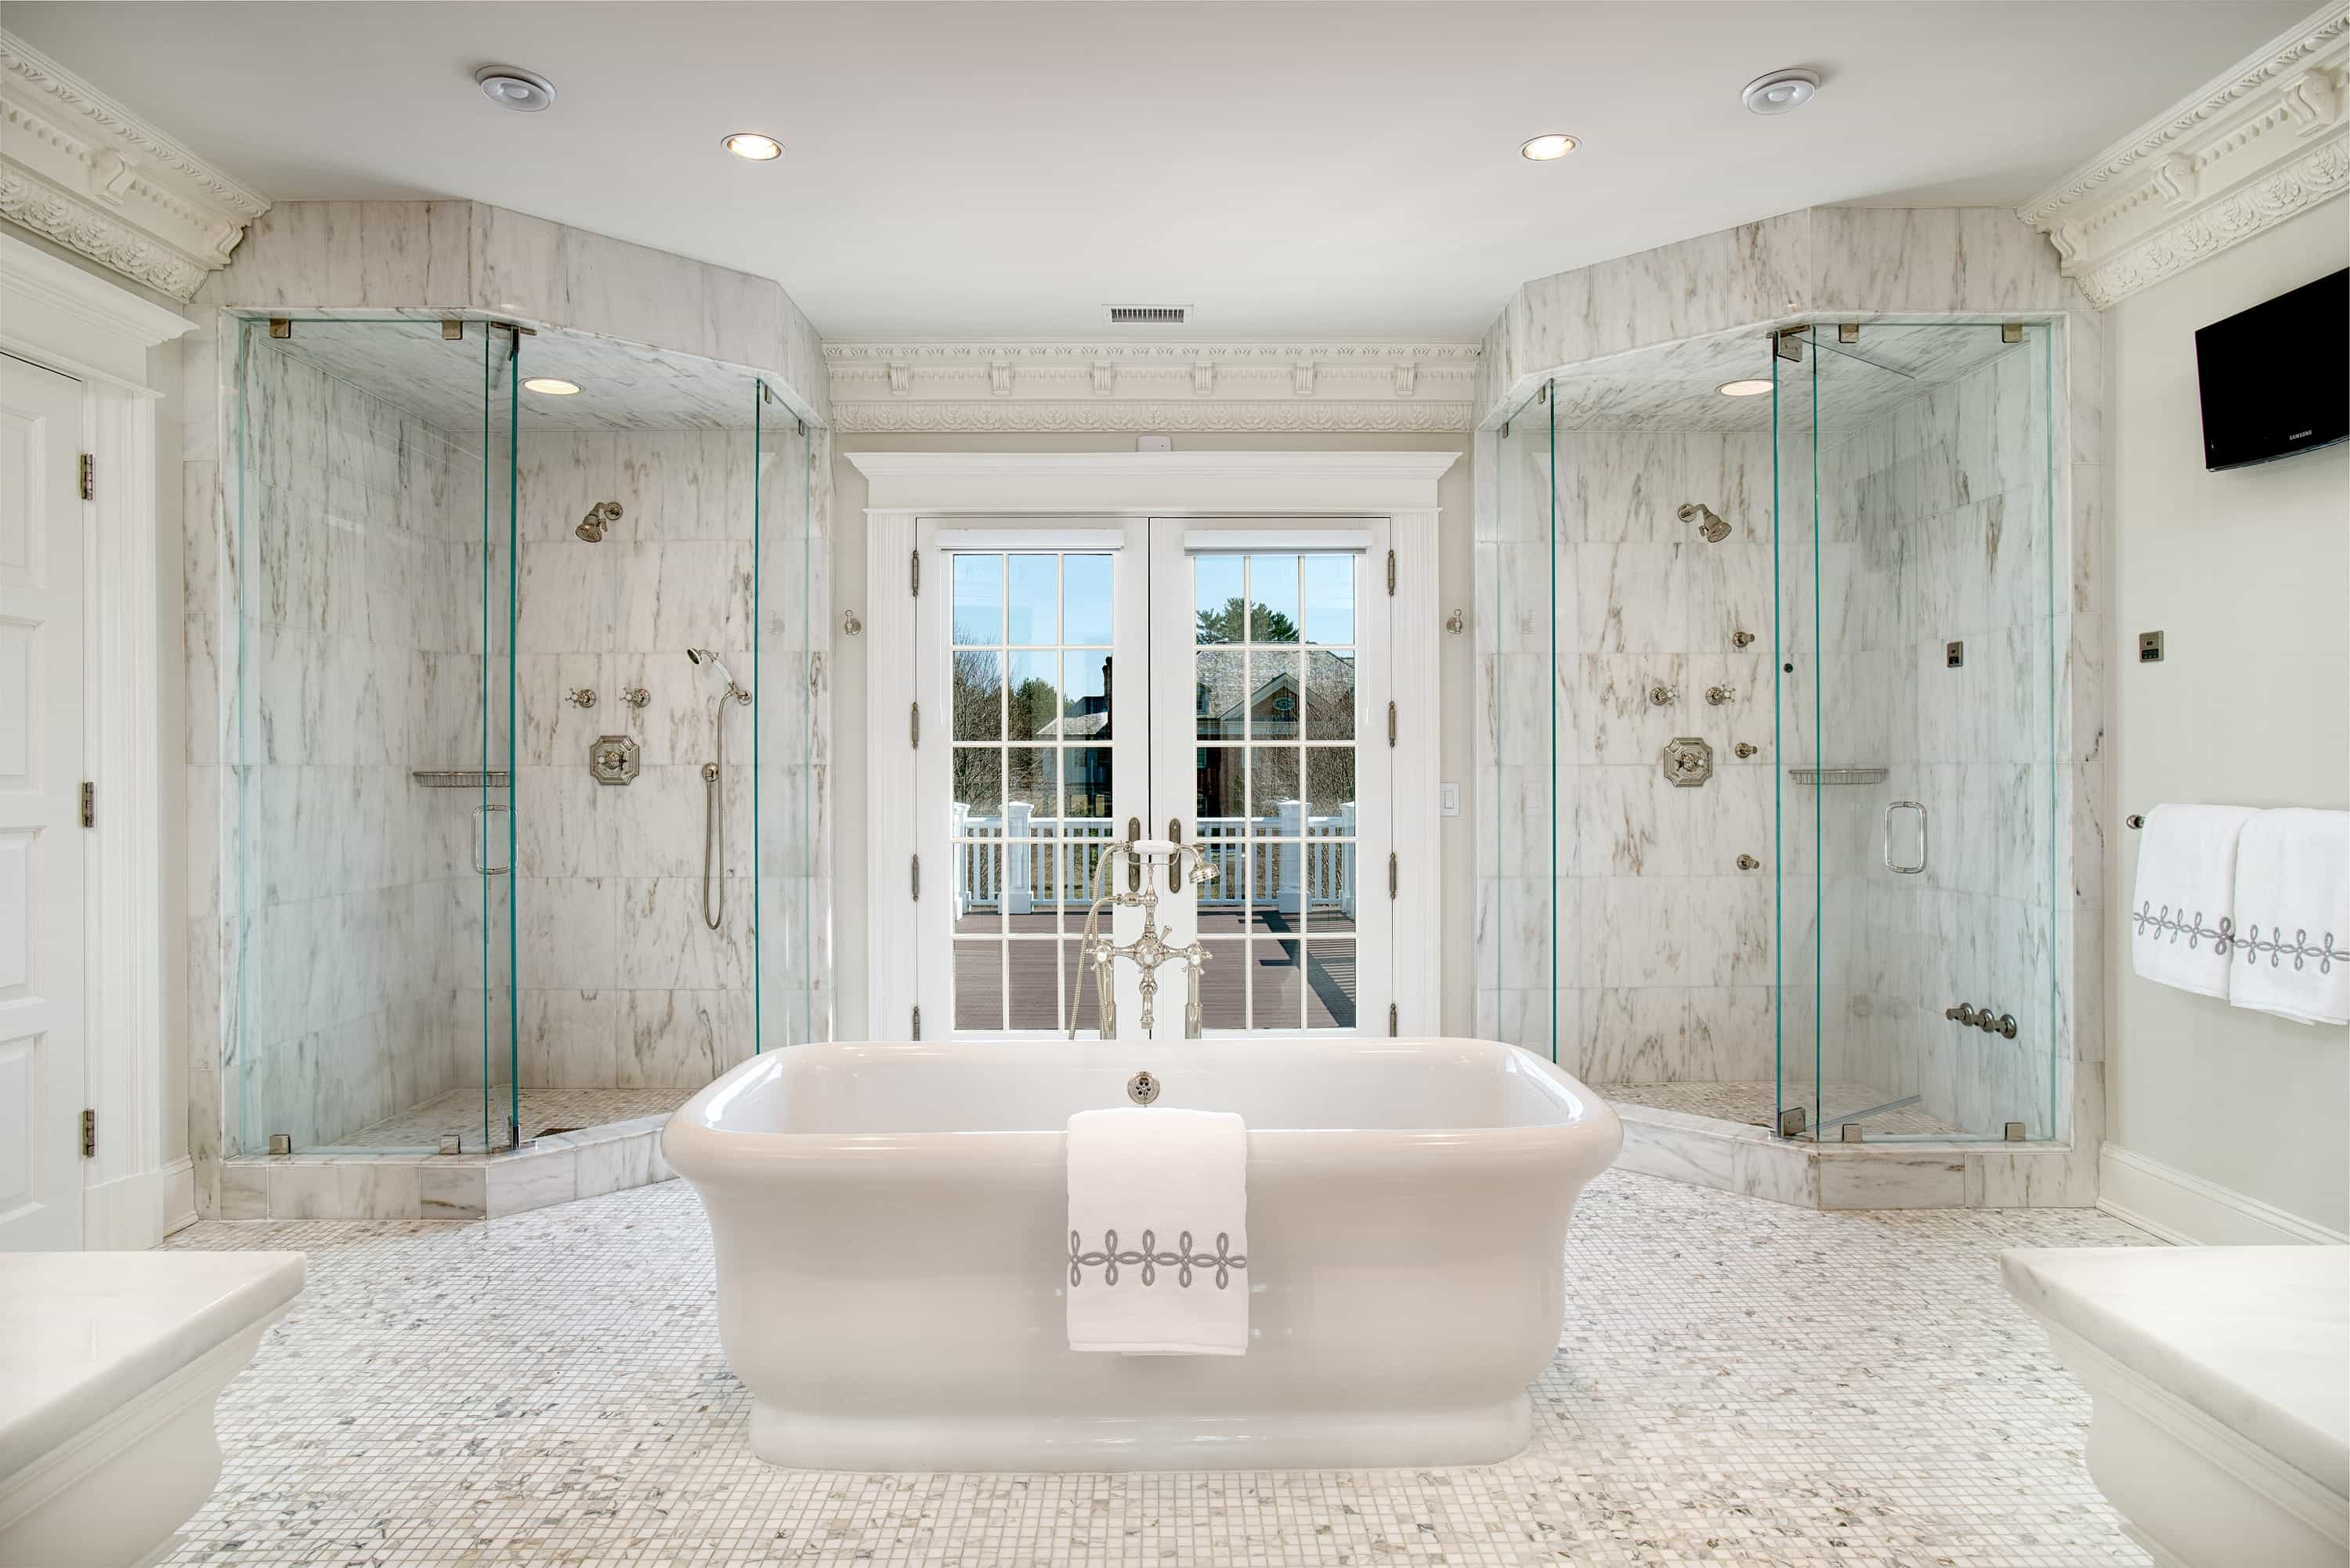 Deluxe French Bathroom Interior Combo With Double Shower Room With Marble Wall And Flooring (Photo 8 of 16)